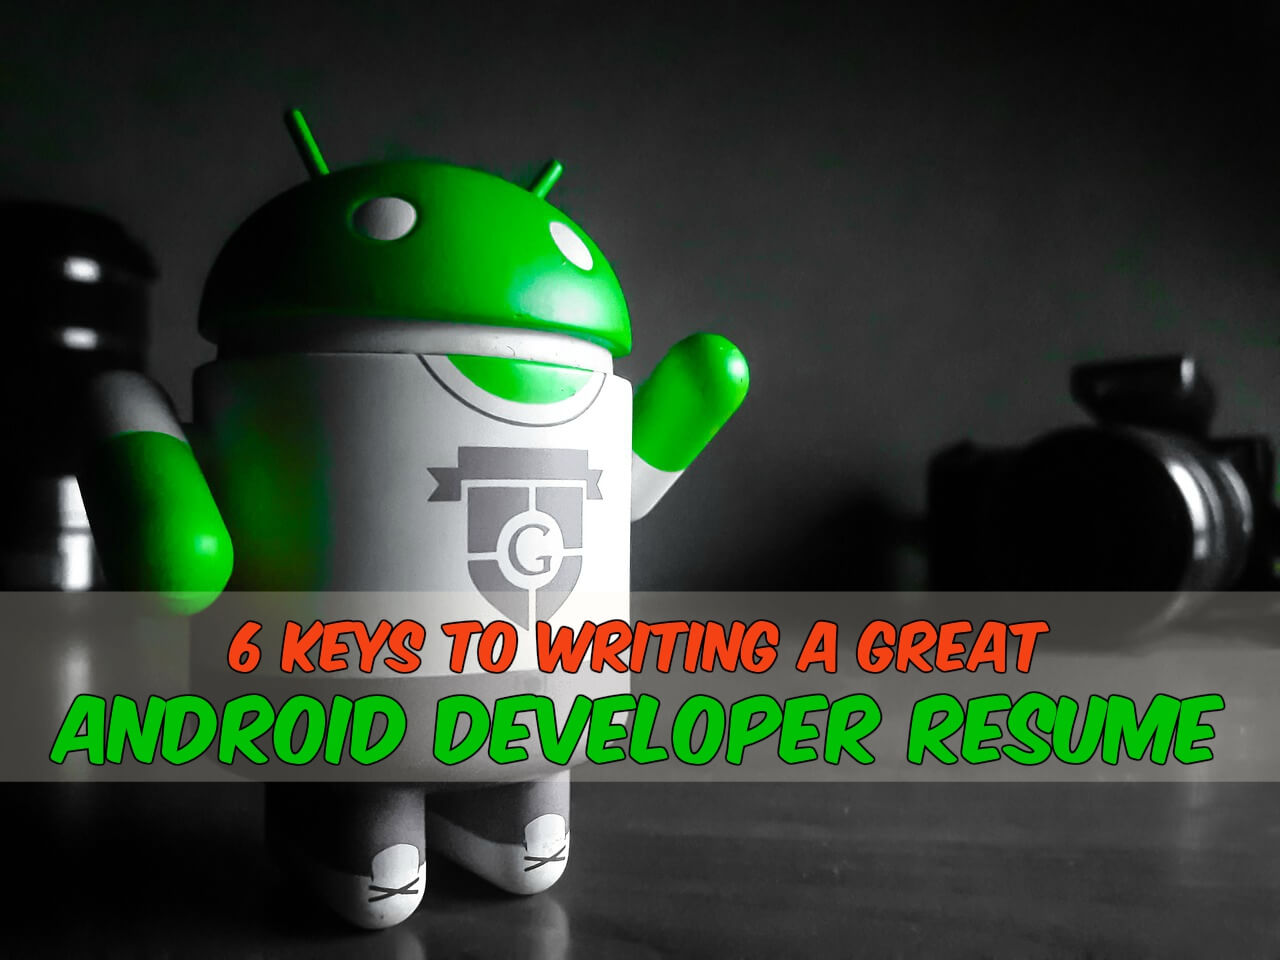 6 Keys to Writing a Great Android Developer Resume